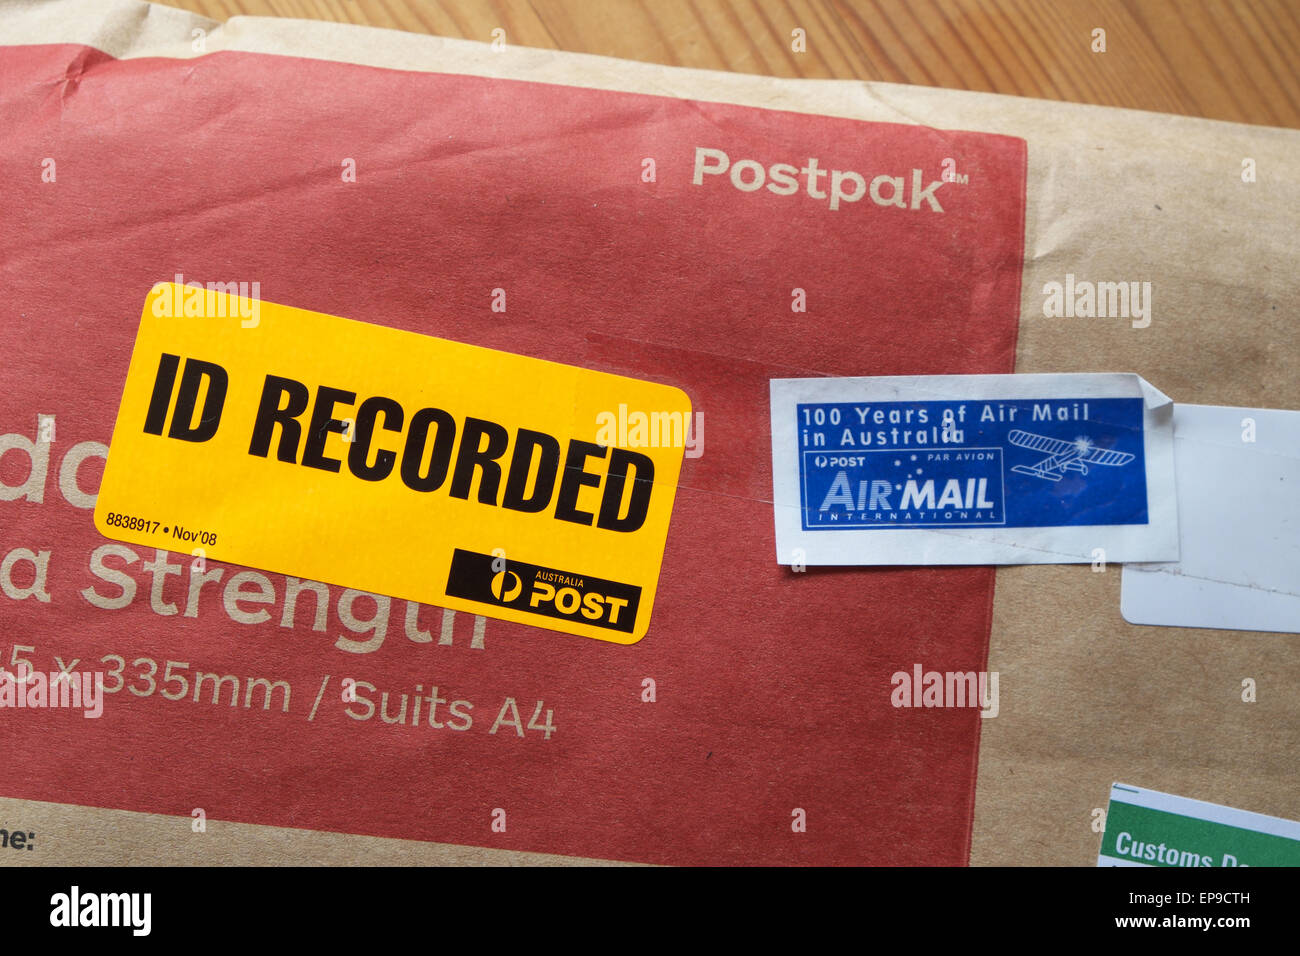 Australia Post postpak jiffy bag with ID Recorded delivery and Air Mail lables - Stock Image